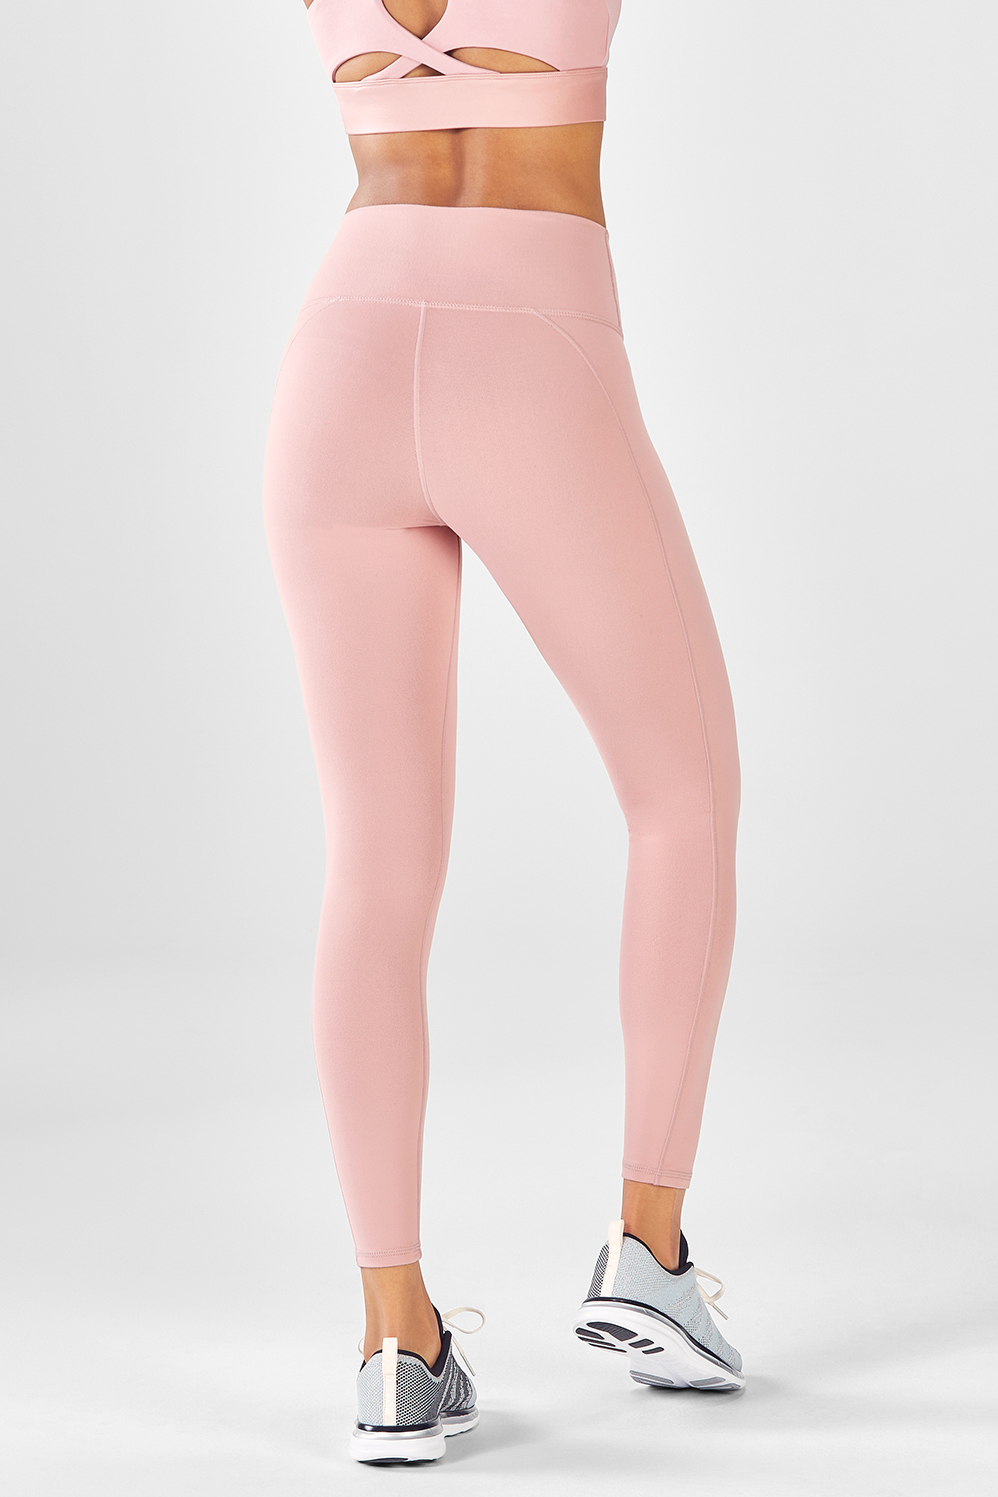 7674341c5a672c High-Waisted Solid PowerHold® 7/8 - Rosebloom